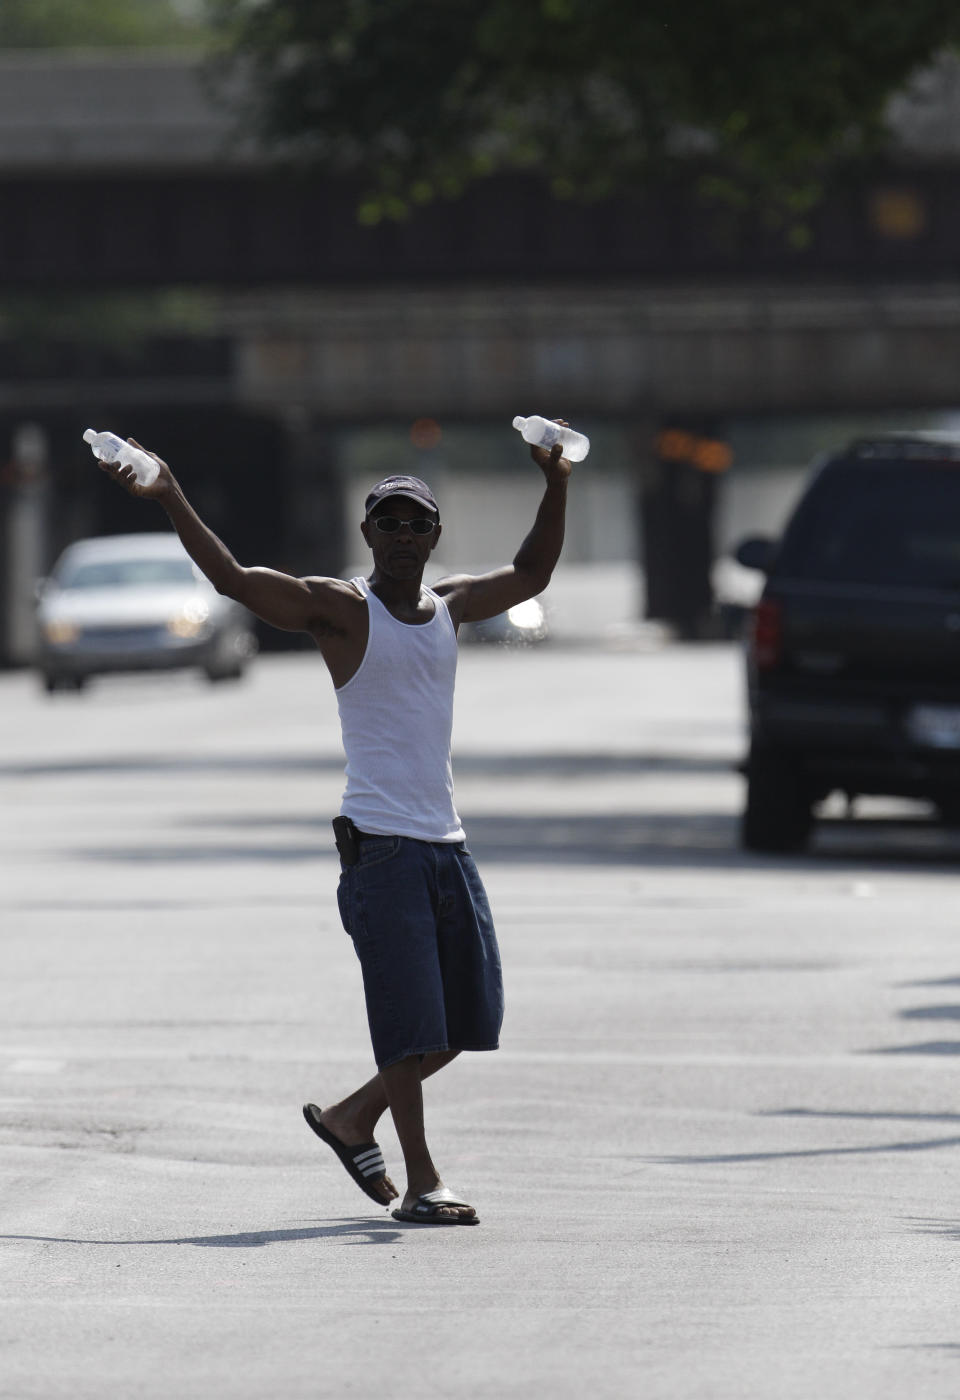 An entrepreneur hawks bottled water to passing motorists along Emmett Till Dr., in Chicago during a continuing heat wave Friday, July 6, 2012. Temperatures in the city are expected to be over 100 degrees for a third straight day. (AP Photo/M. Spencer Green)